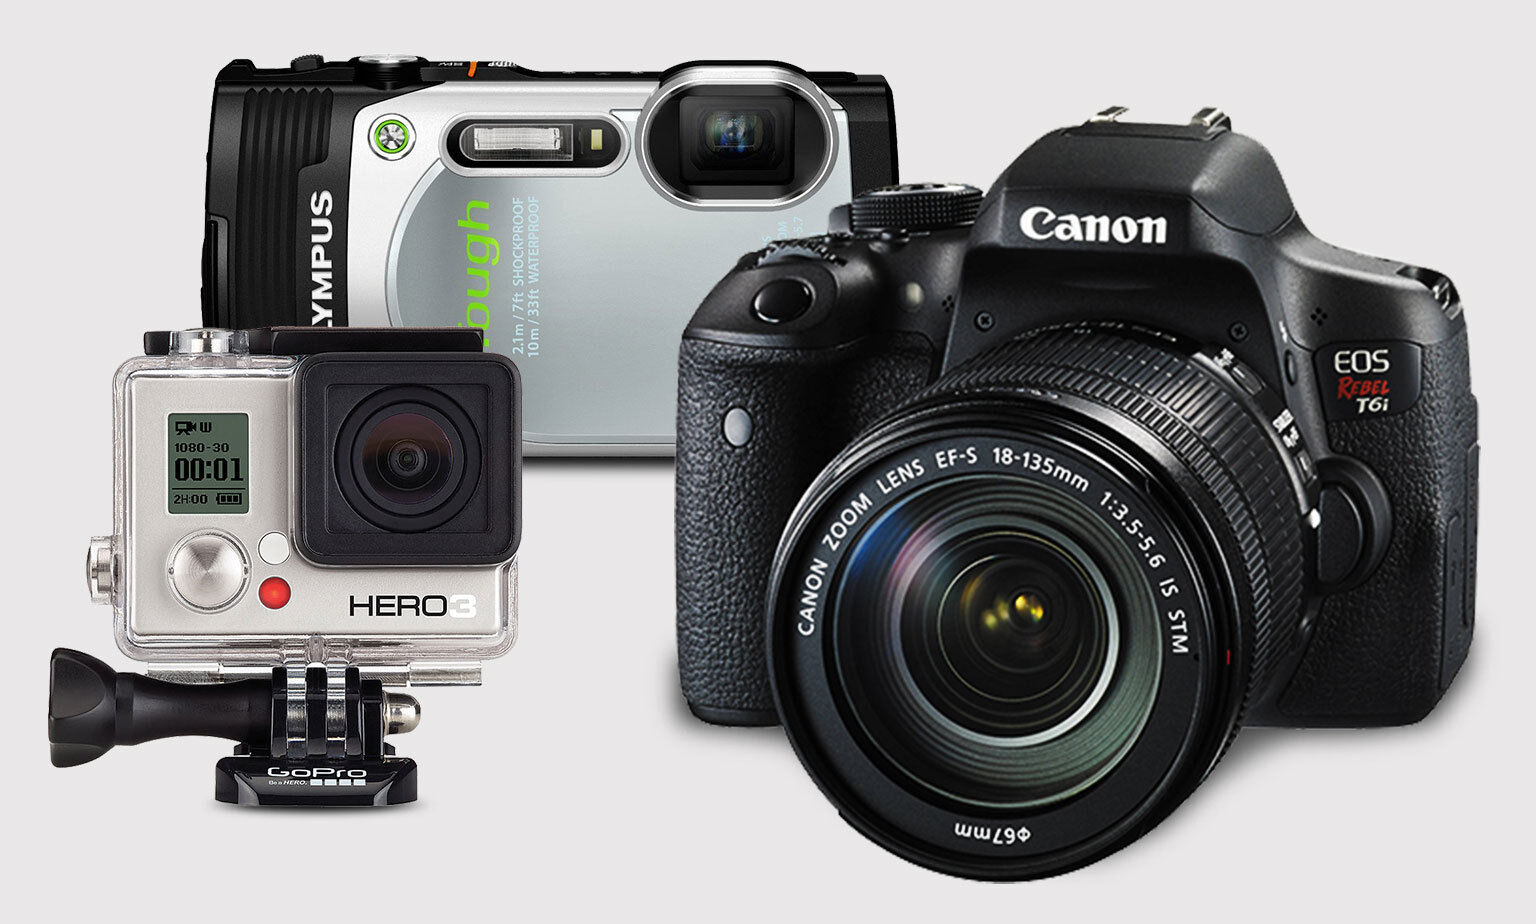 Up to 40% Off on DSLRs, Compact Cameras and More